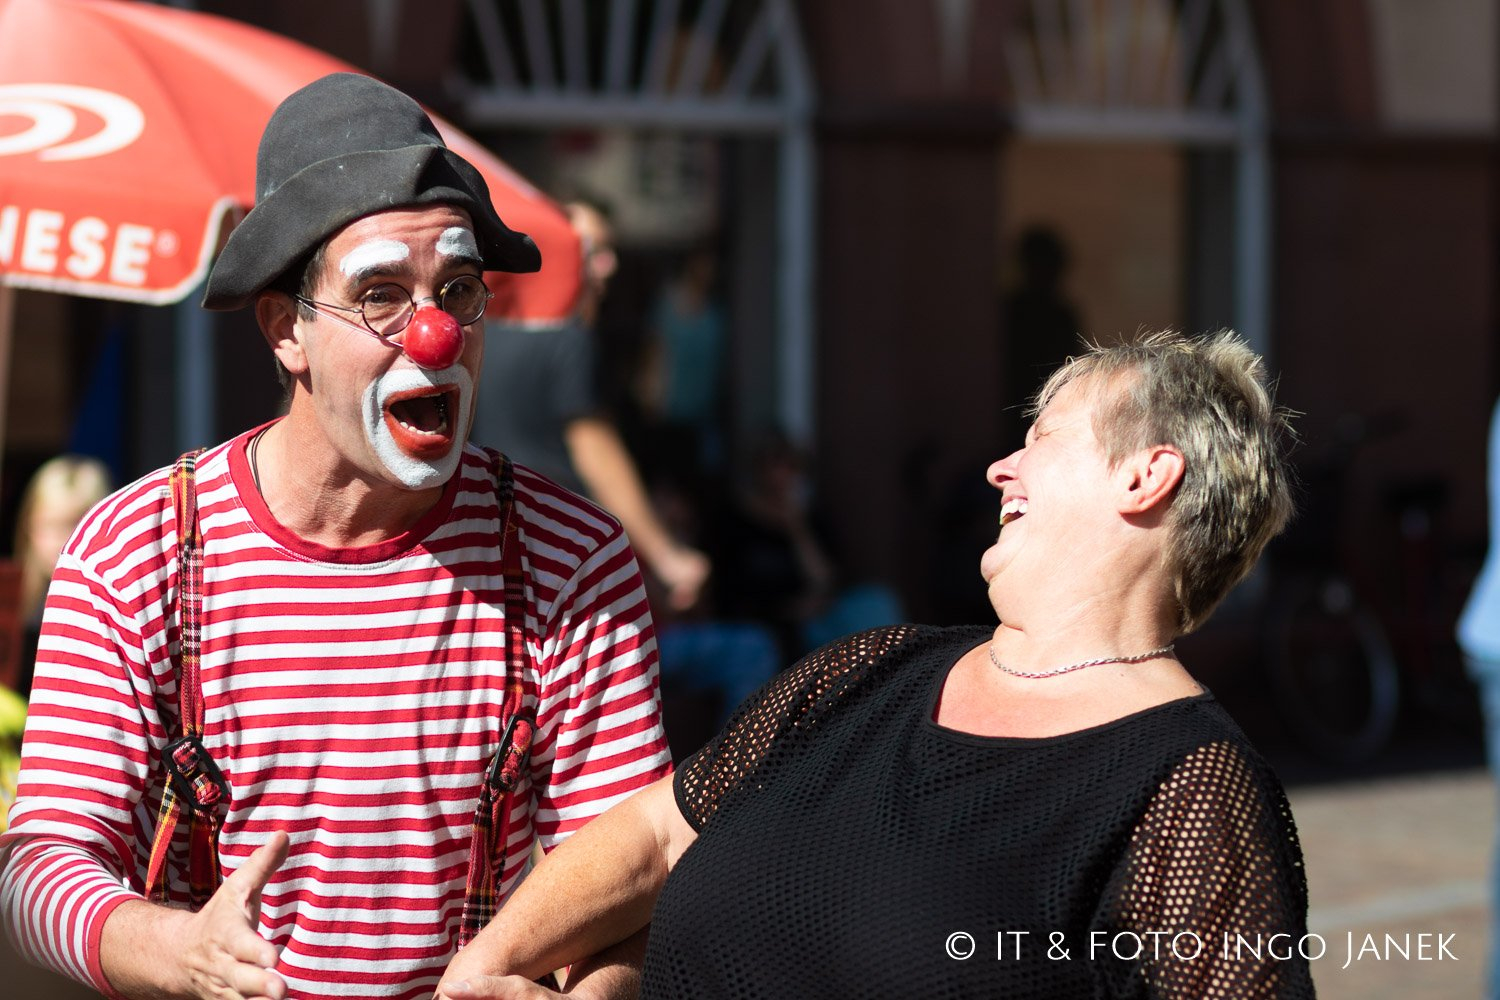 Clown Eventfotografie